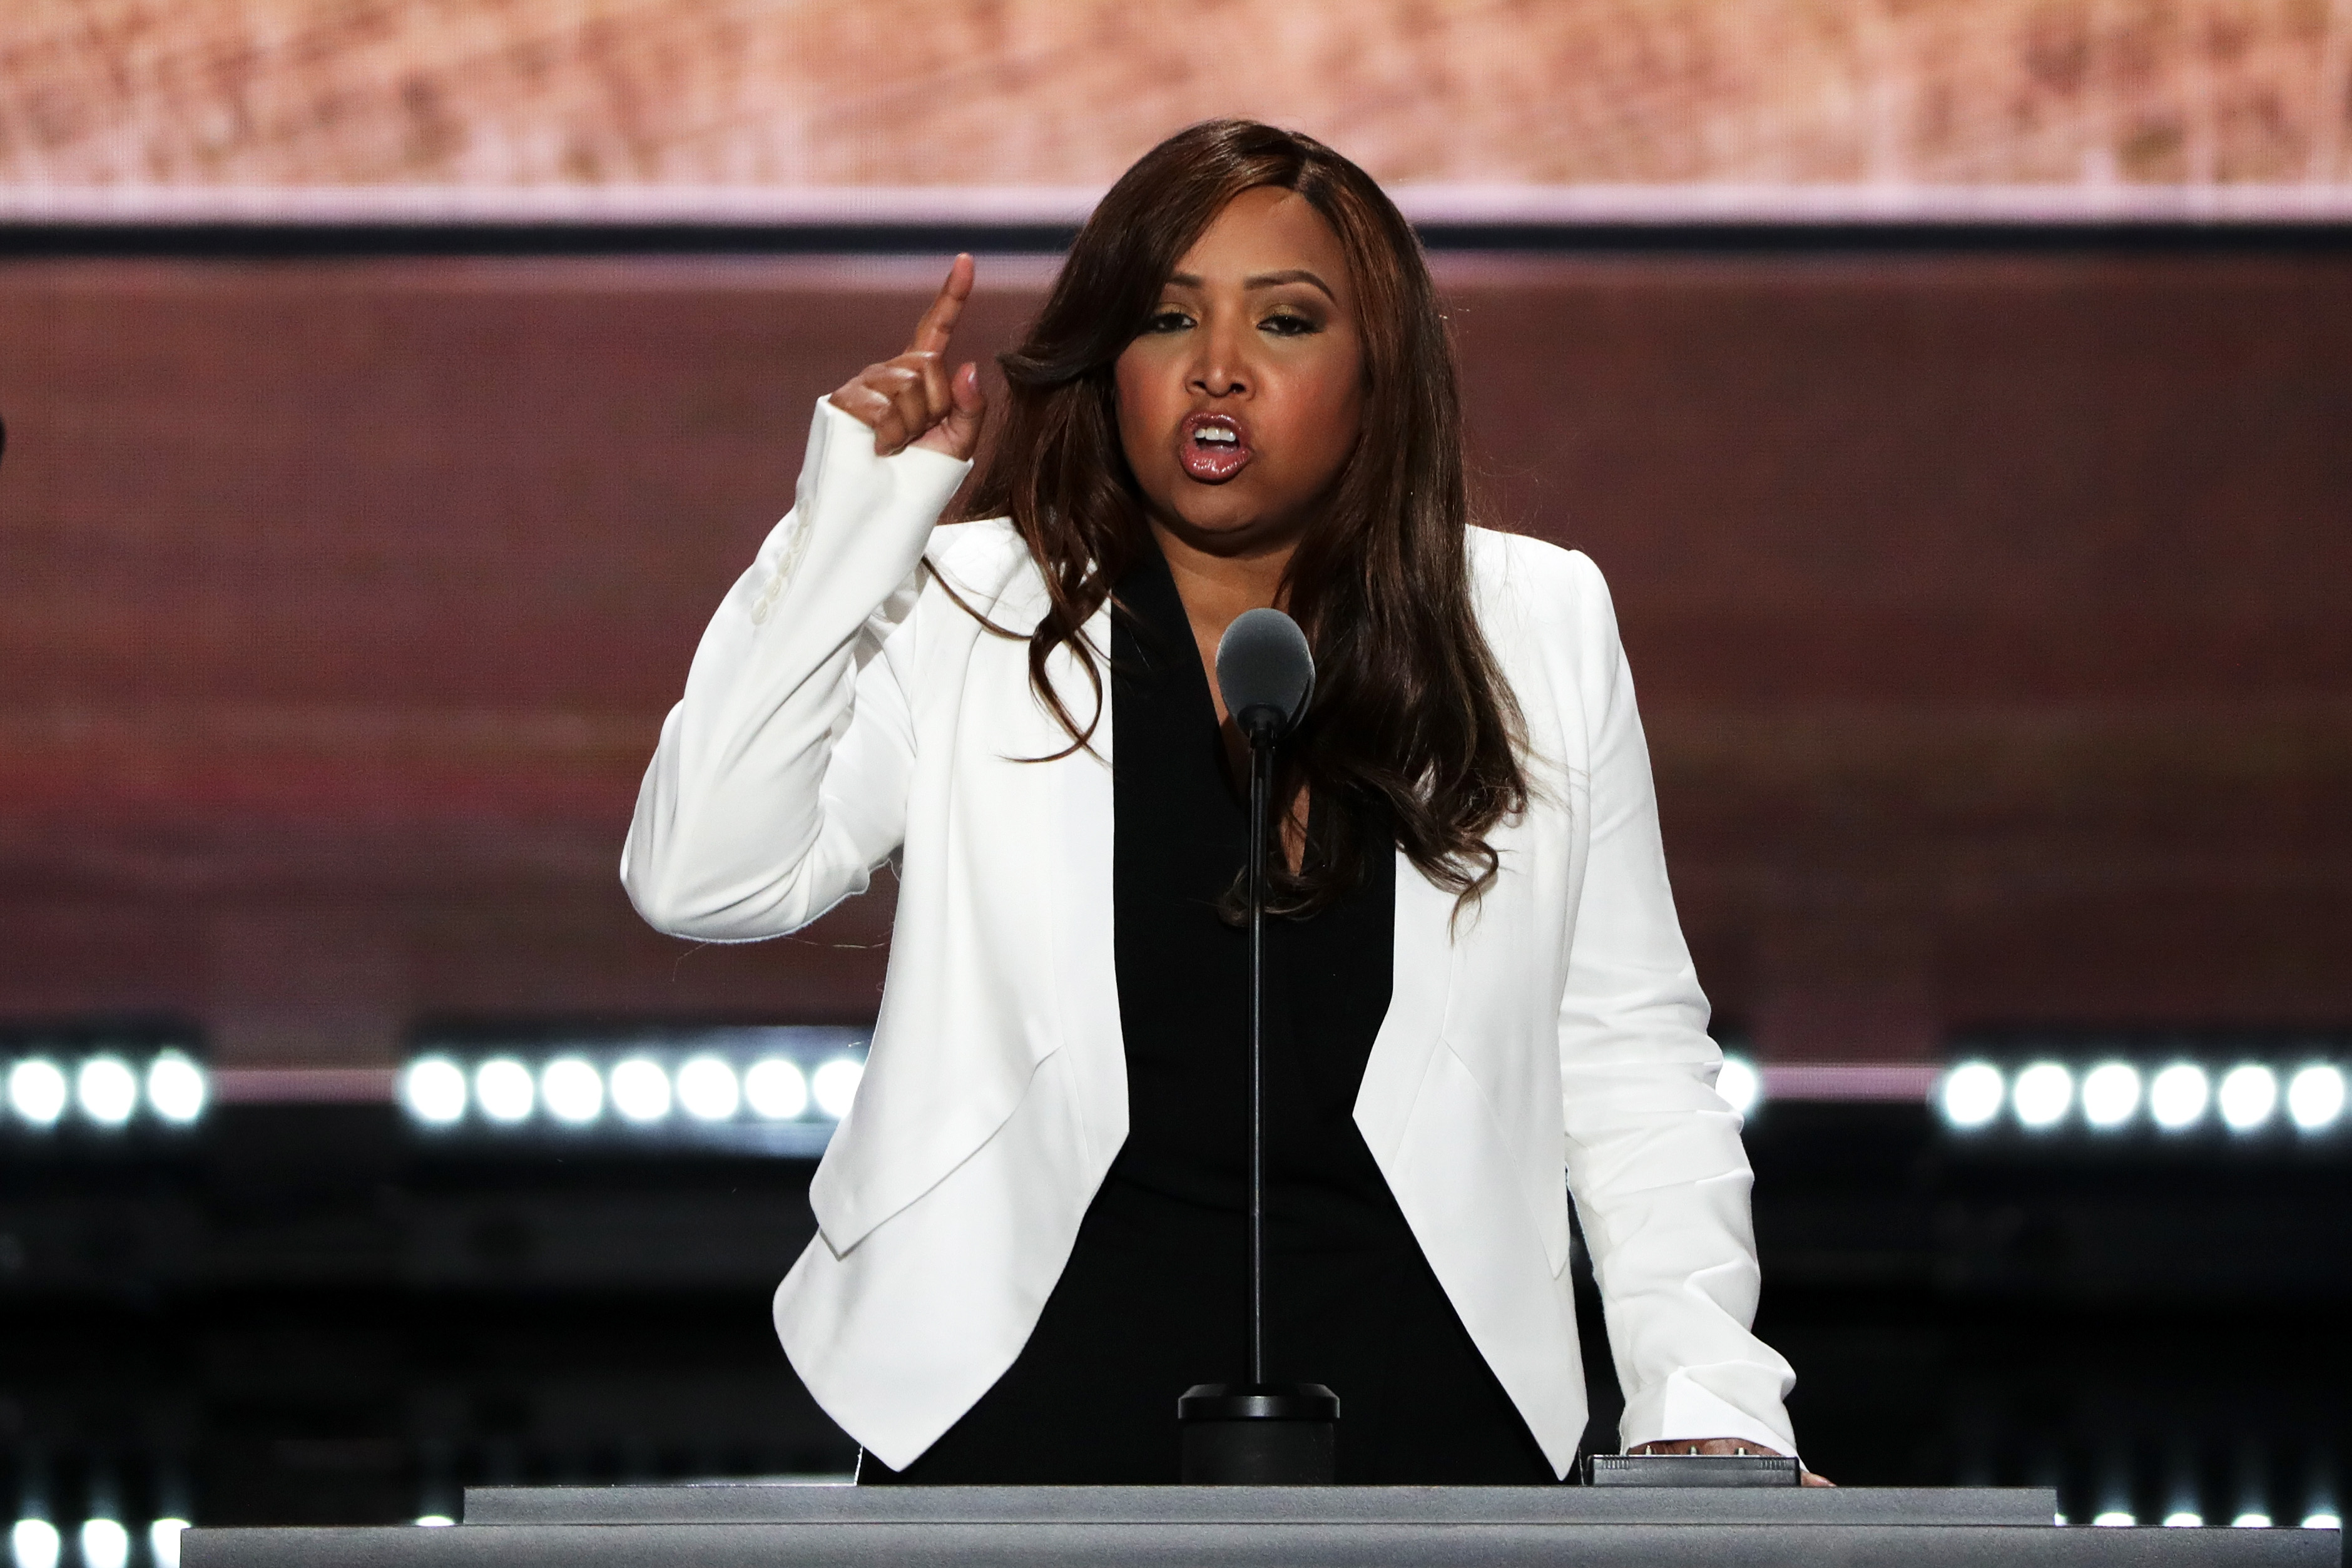 Lynne Patton at the 2016 Republican National Convention.